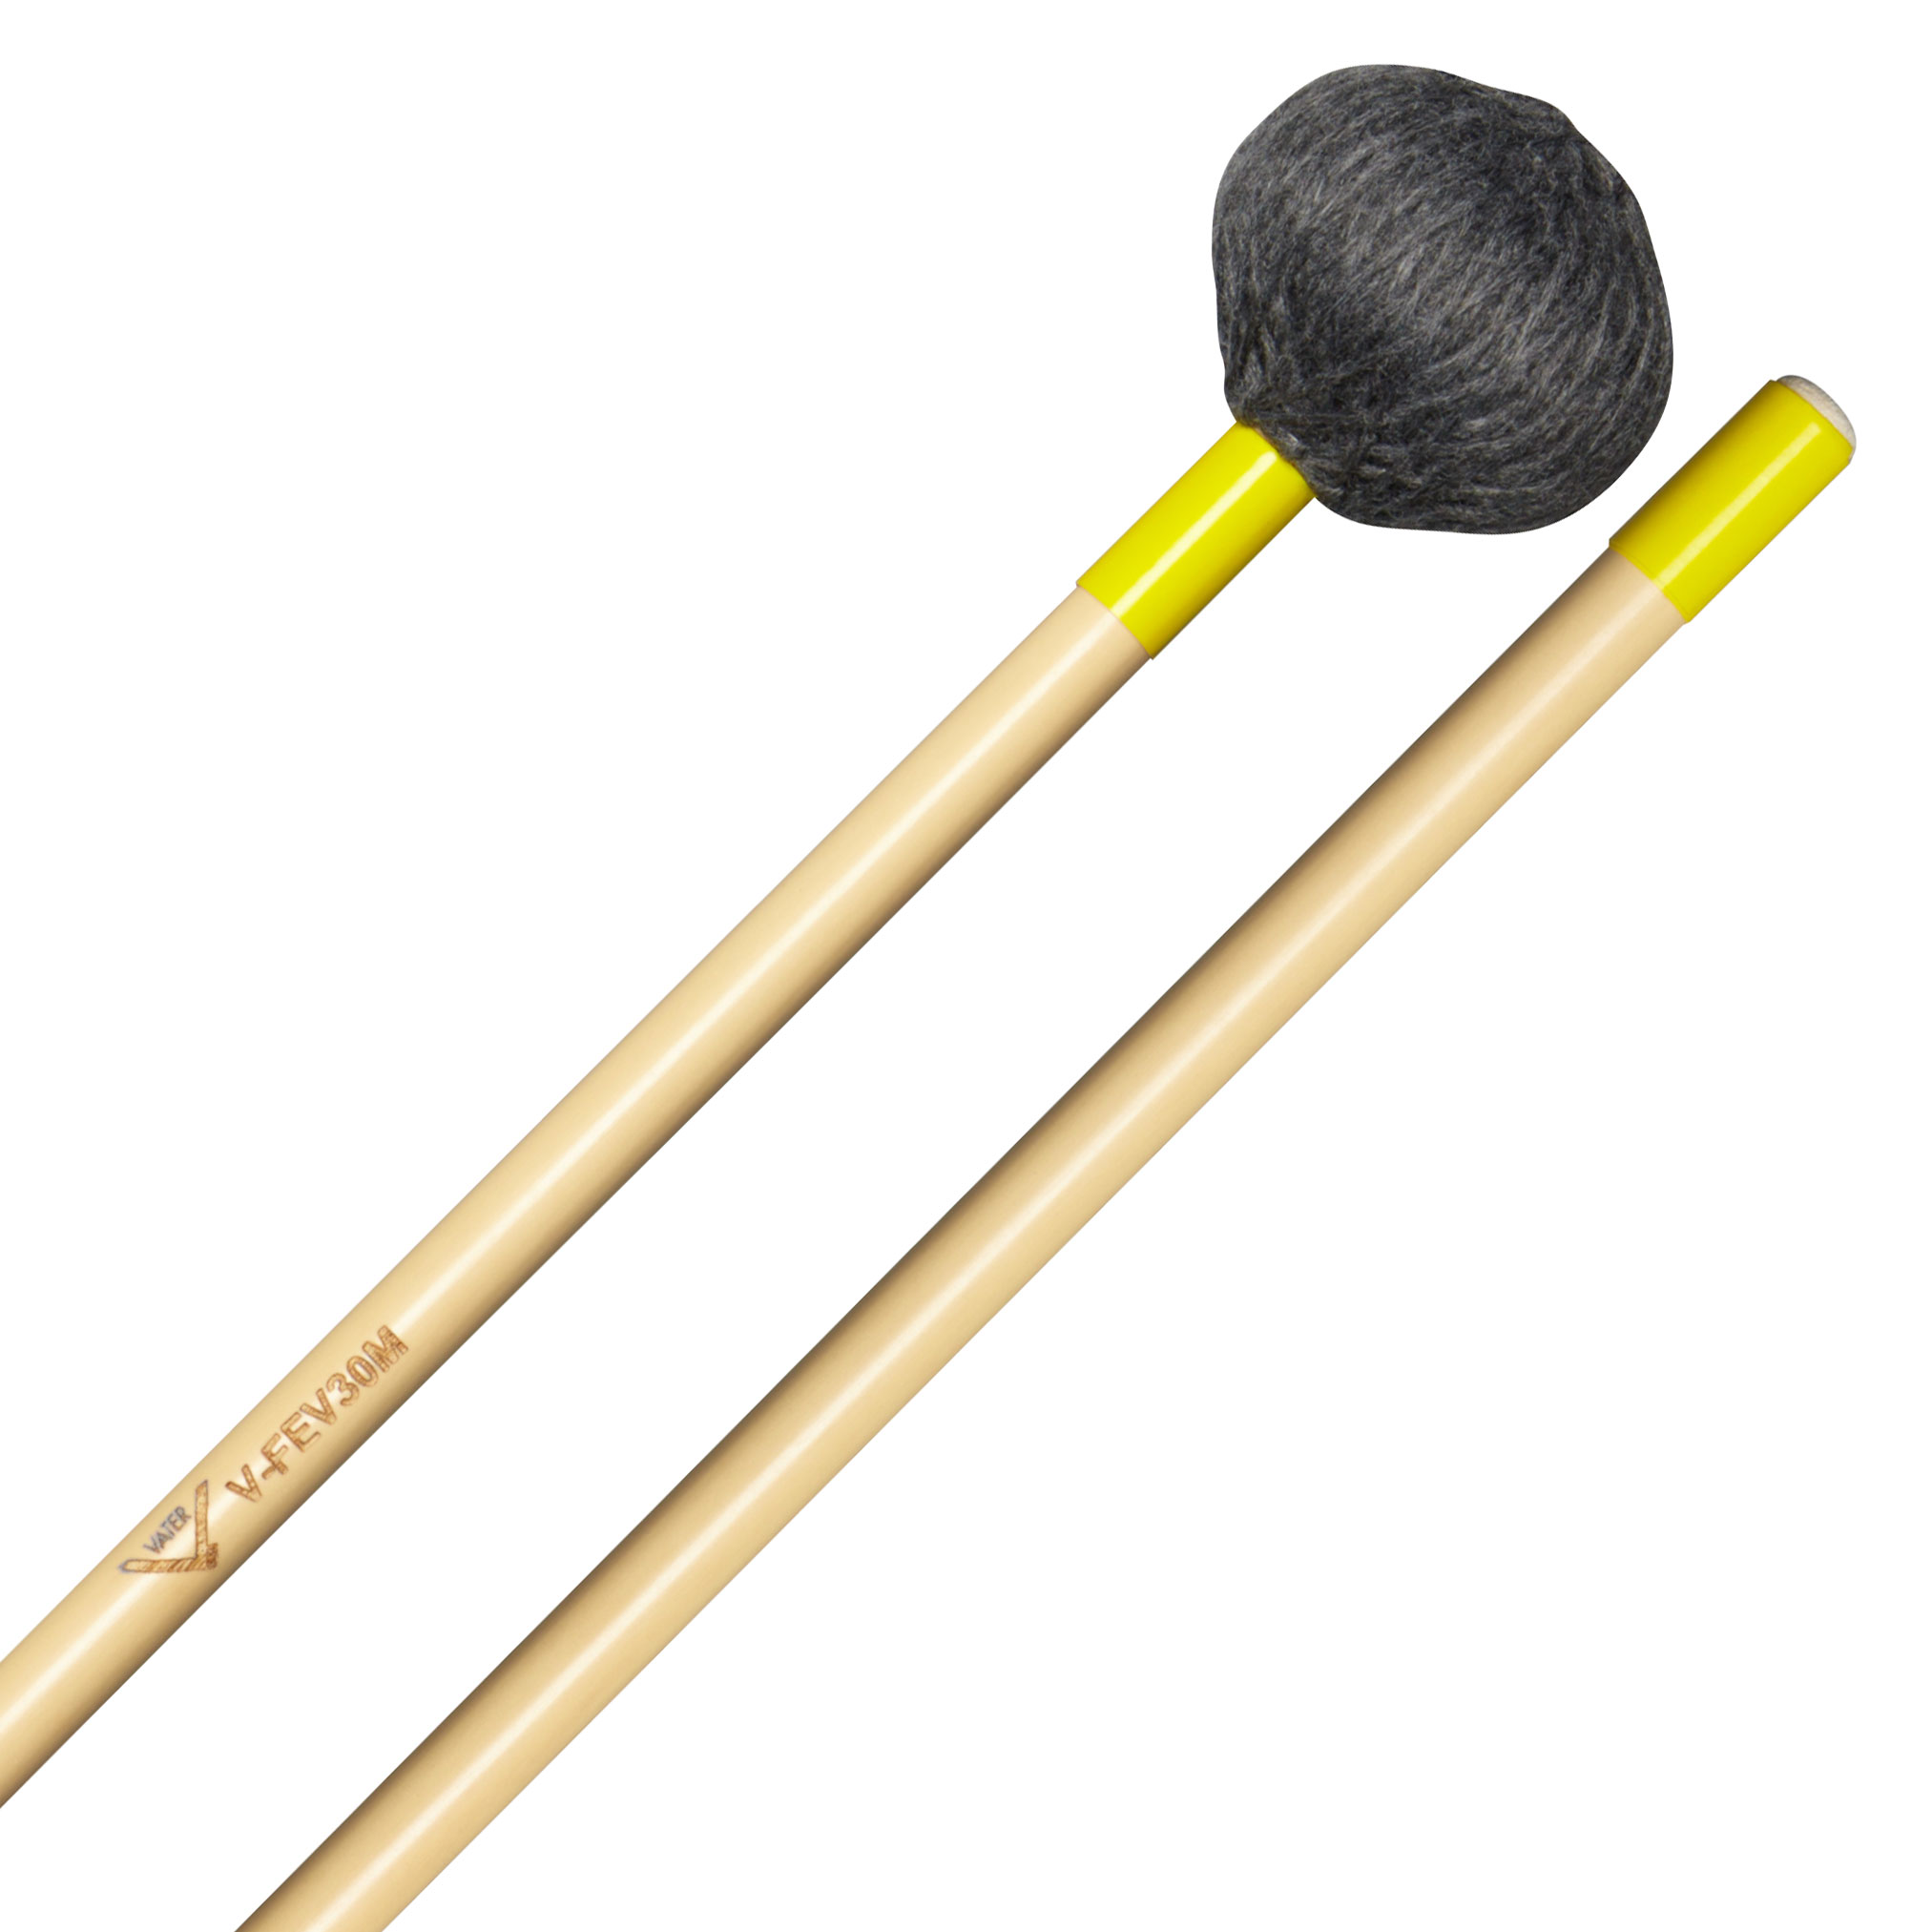 Vater Front Ensemble Medium Vibraphone Mallets (Oval Shape)